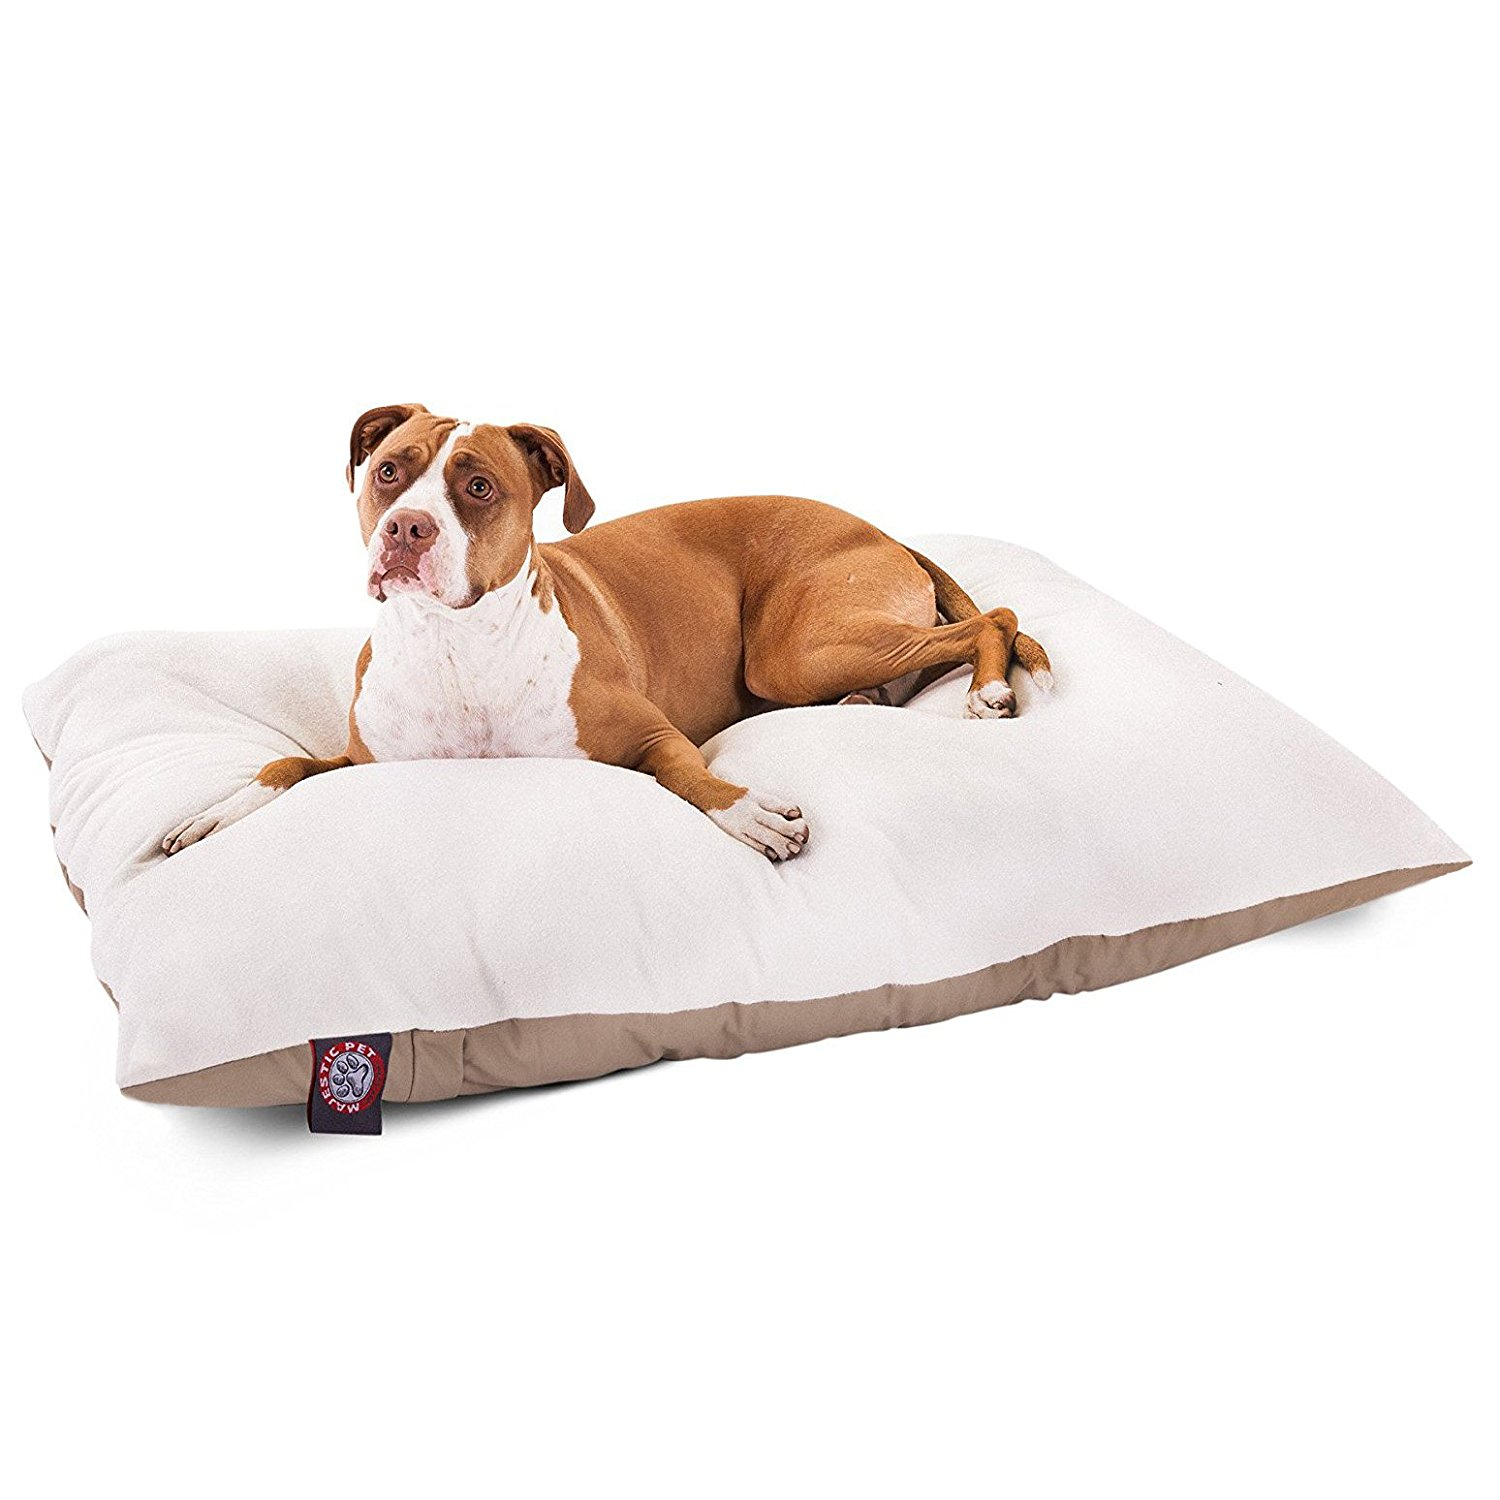 4.-Polyester-Cotton-Sherpa-Rectangle-Pet-Dog-Bed-By-Majestic-Pet-Products 10 Best Beds for Large Dogs